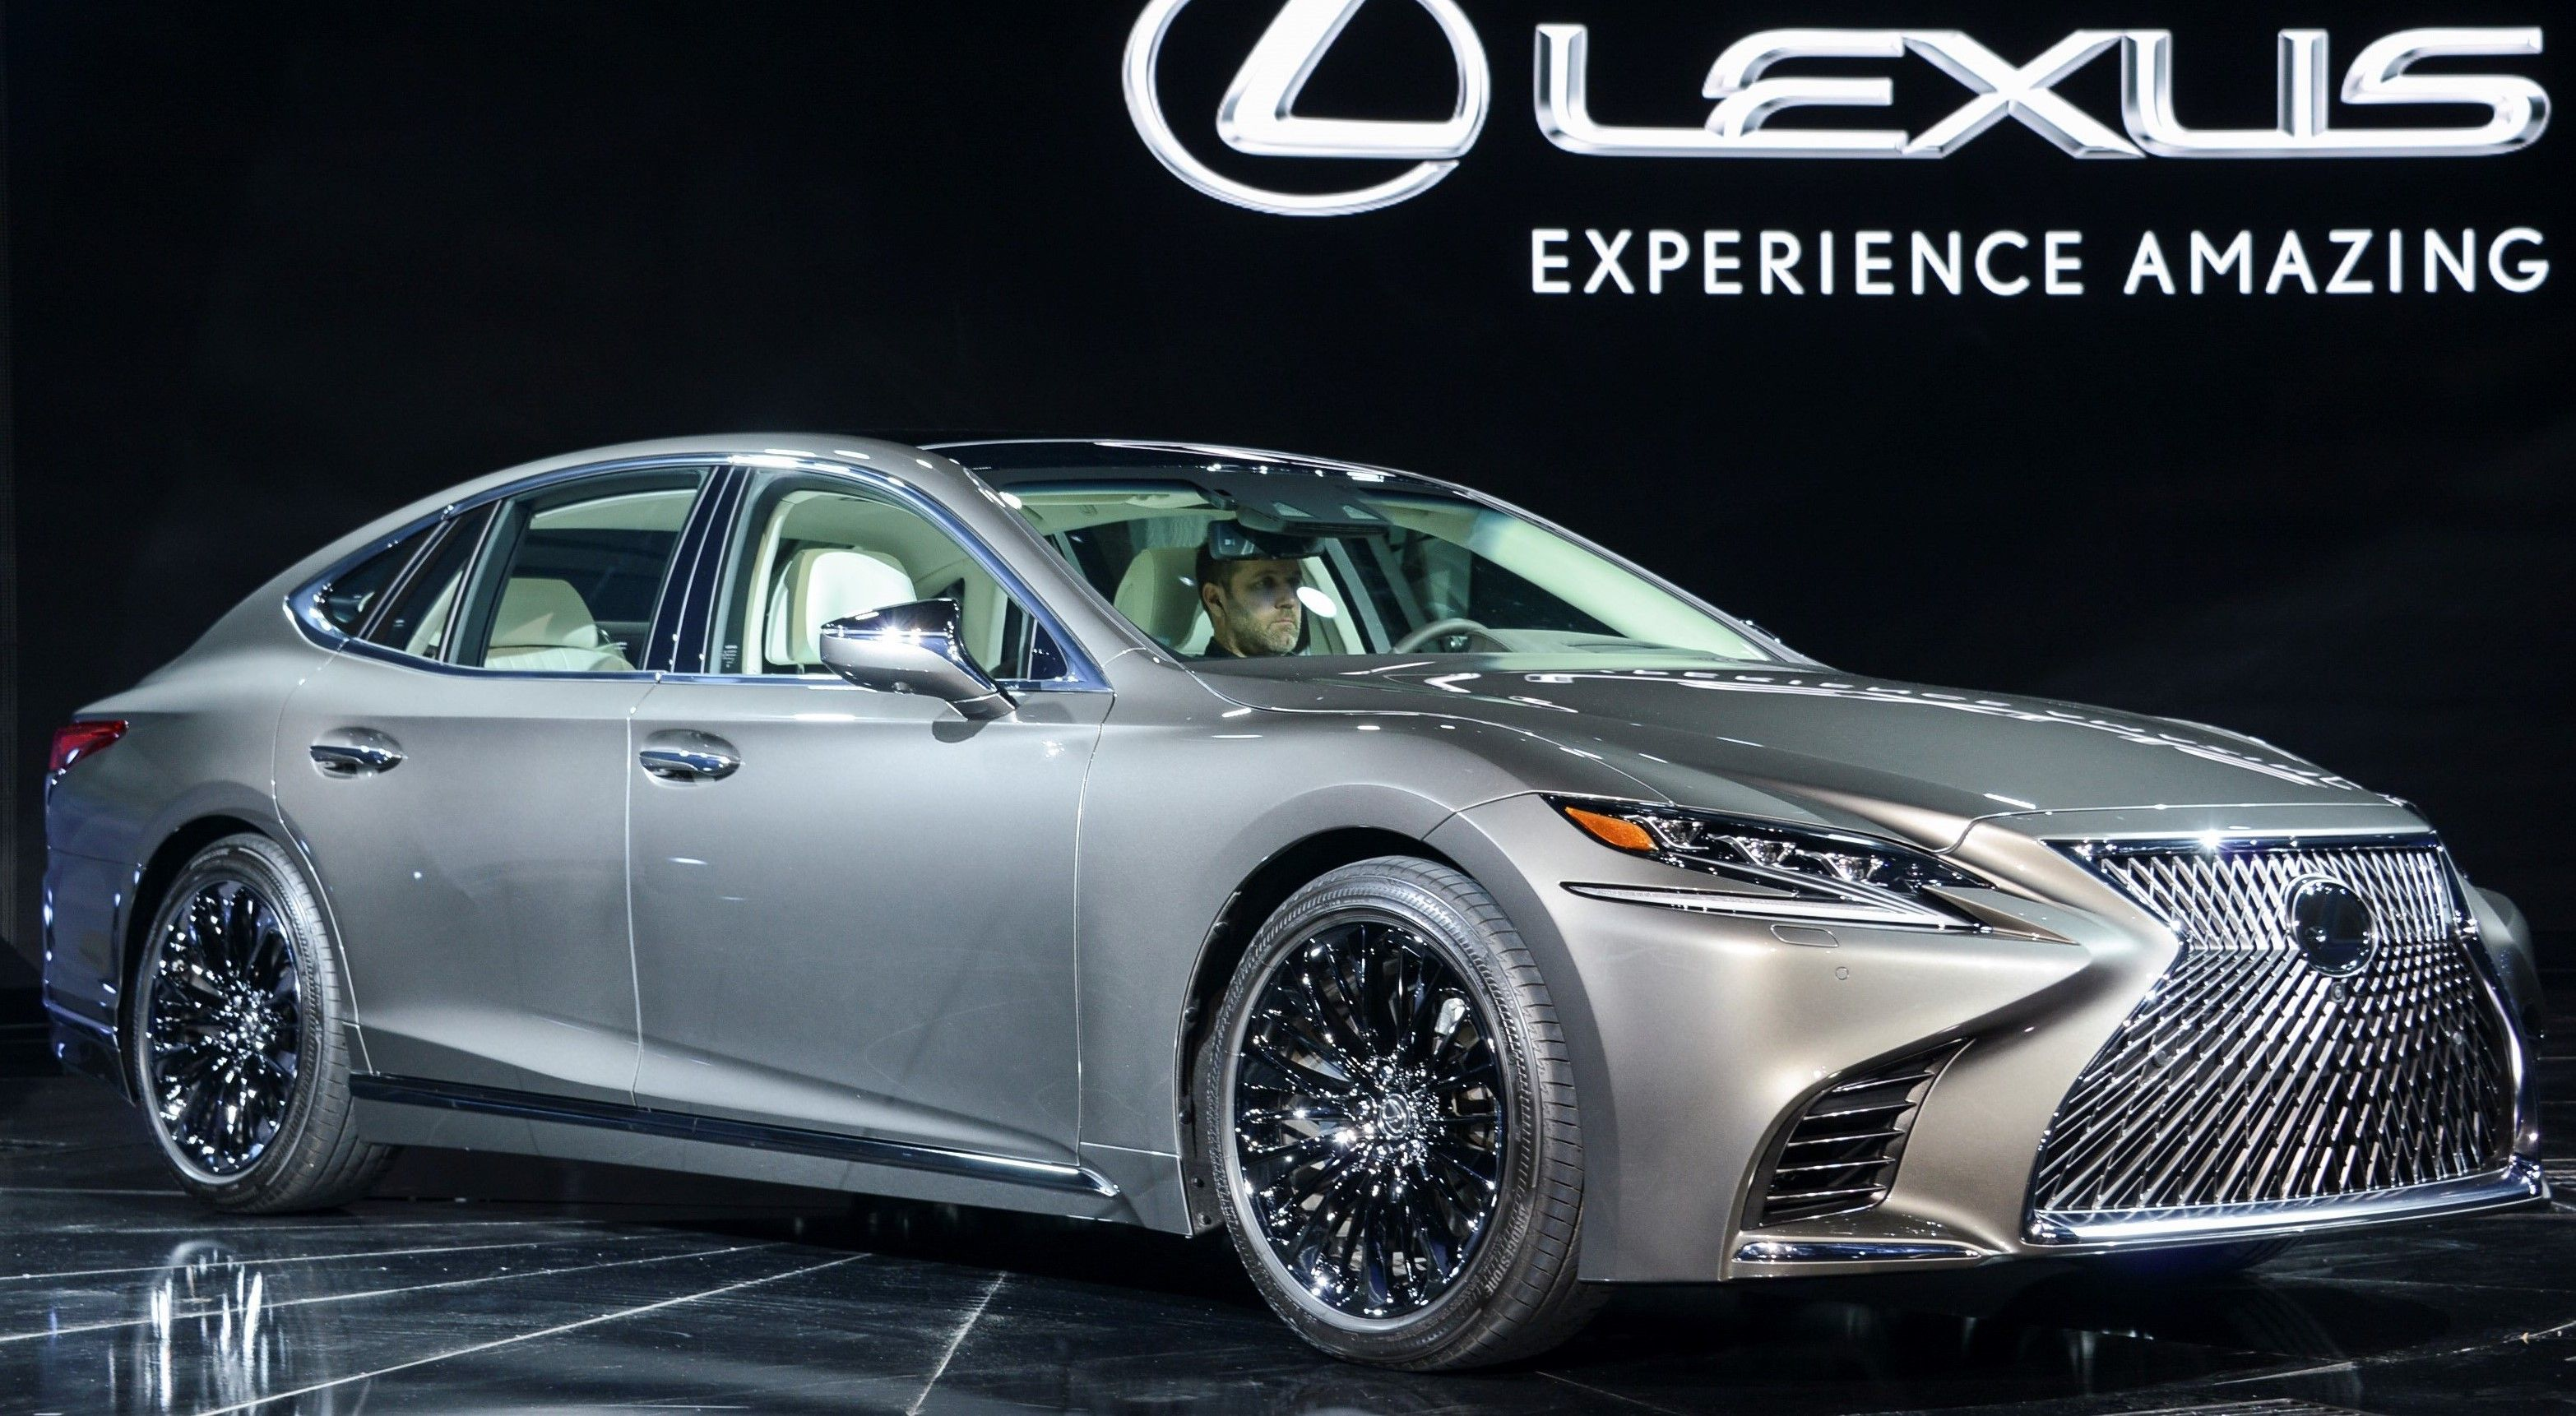 excellent kingston of cvt lexus pre owned used new sale cars luxury elegant in inventory for jm